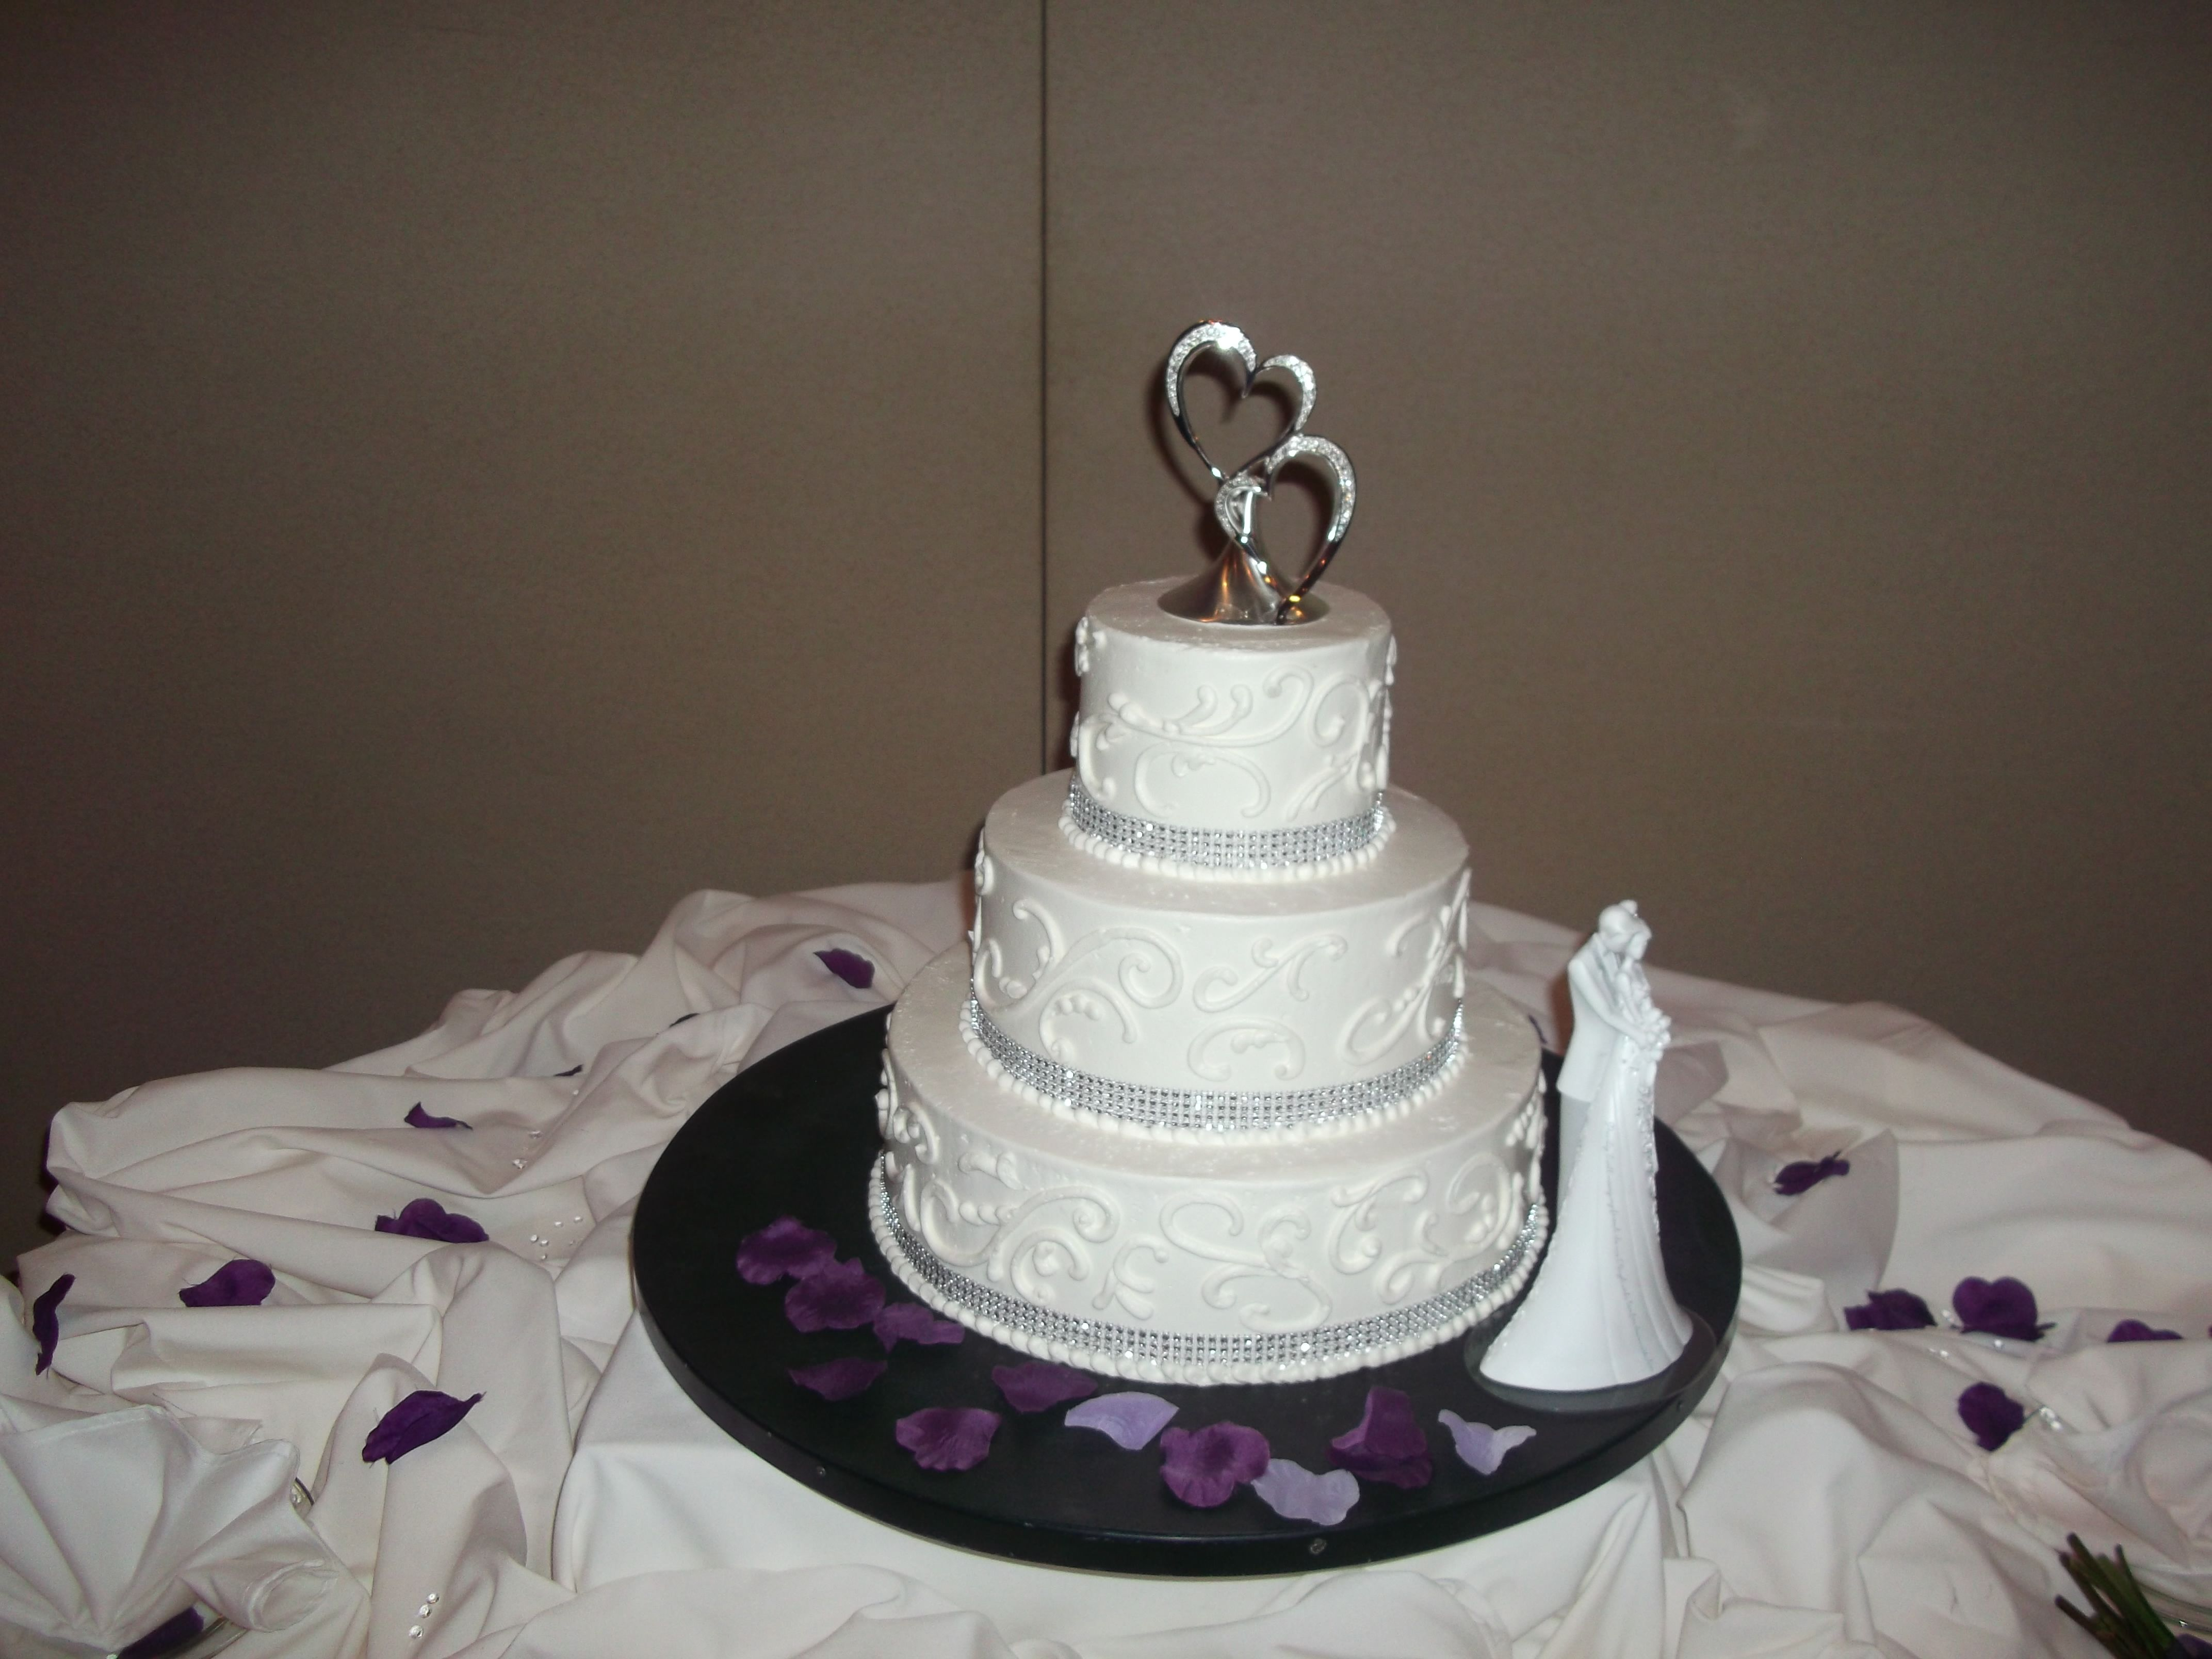 White with crystals tiered white buttercream wedding cake with